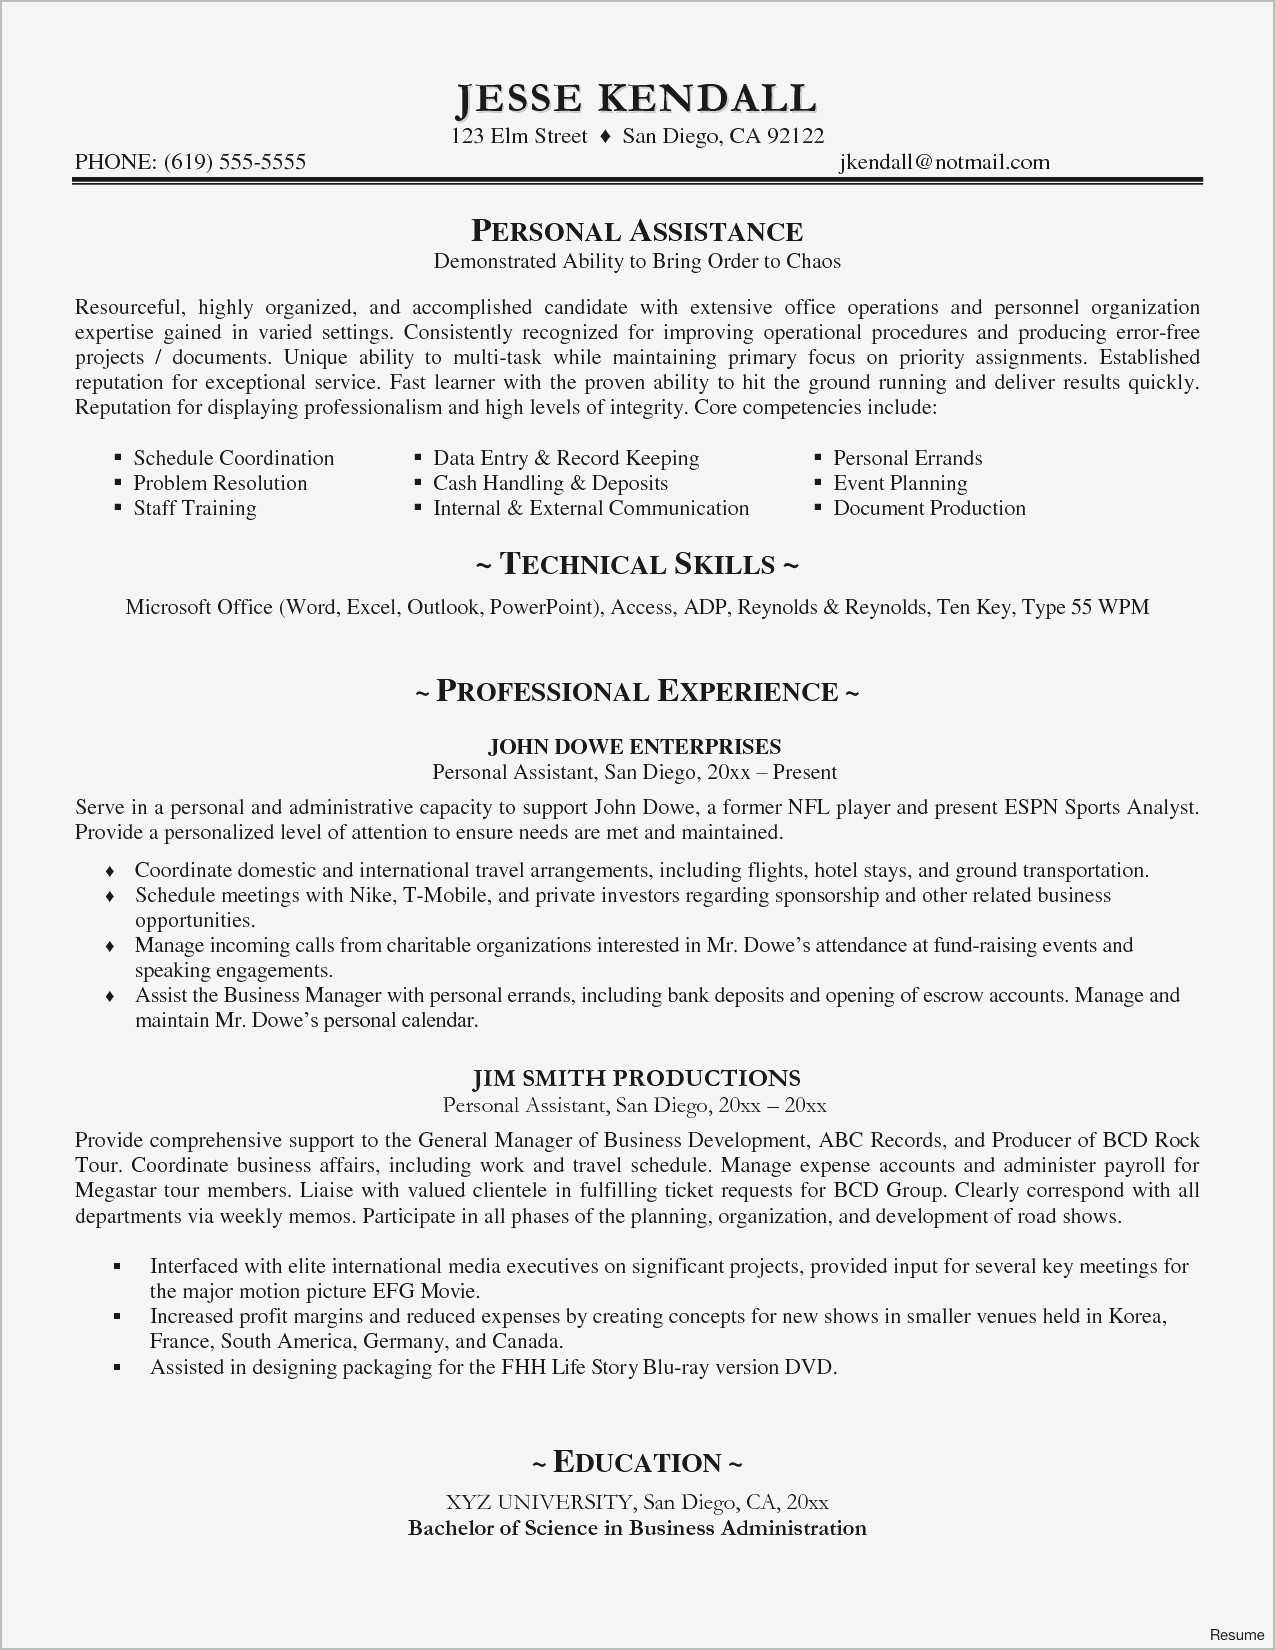 trainer resume example-Personal Trainer Resume New Best Perfect Nursing Resume Awesome Nursing Resumes 0d Wallpapers Personal Trainer 20-f